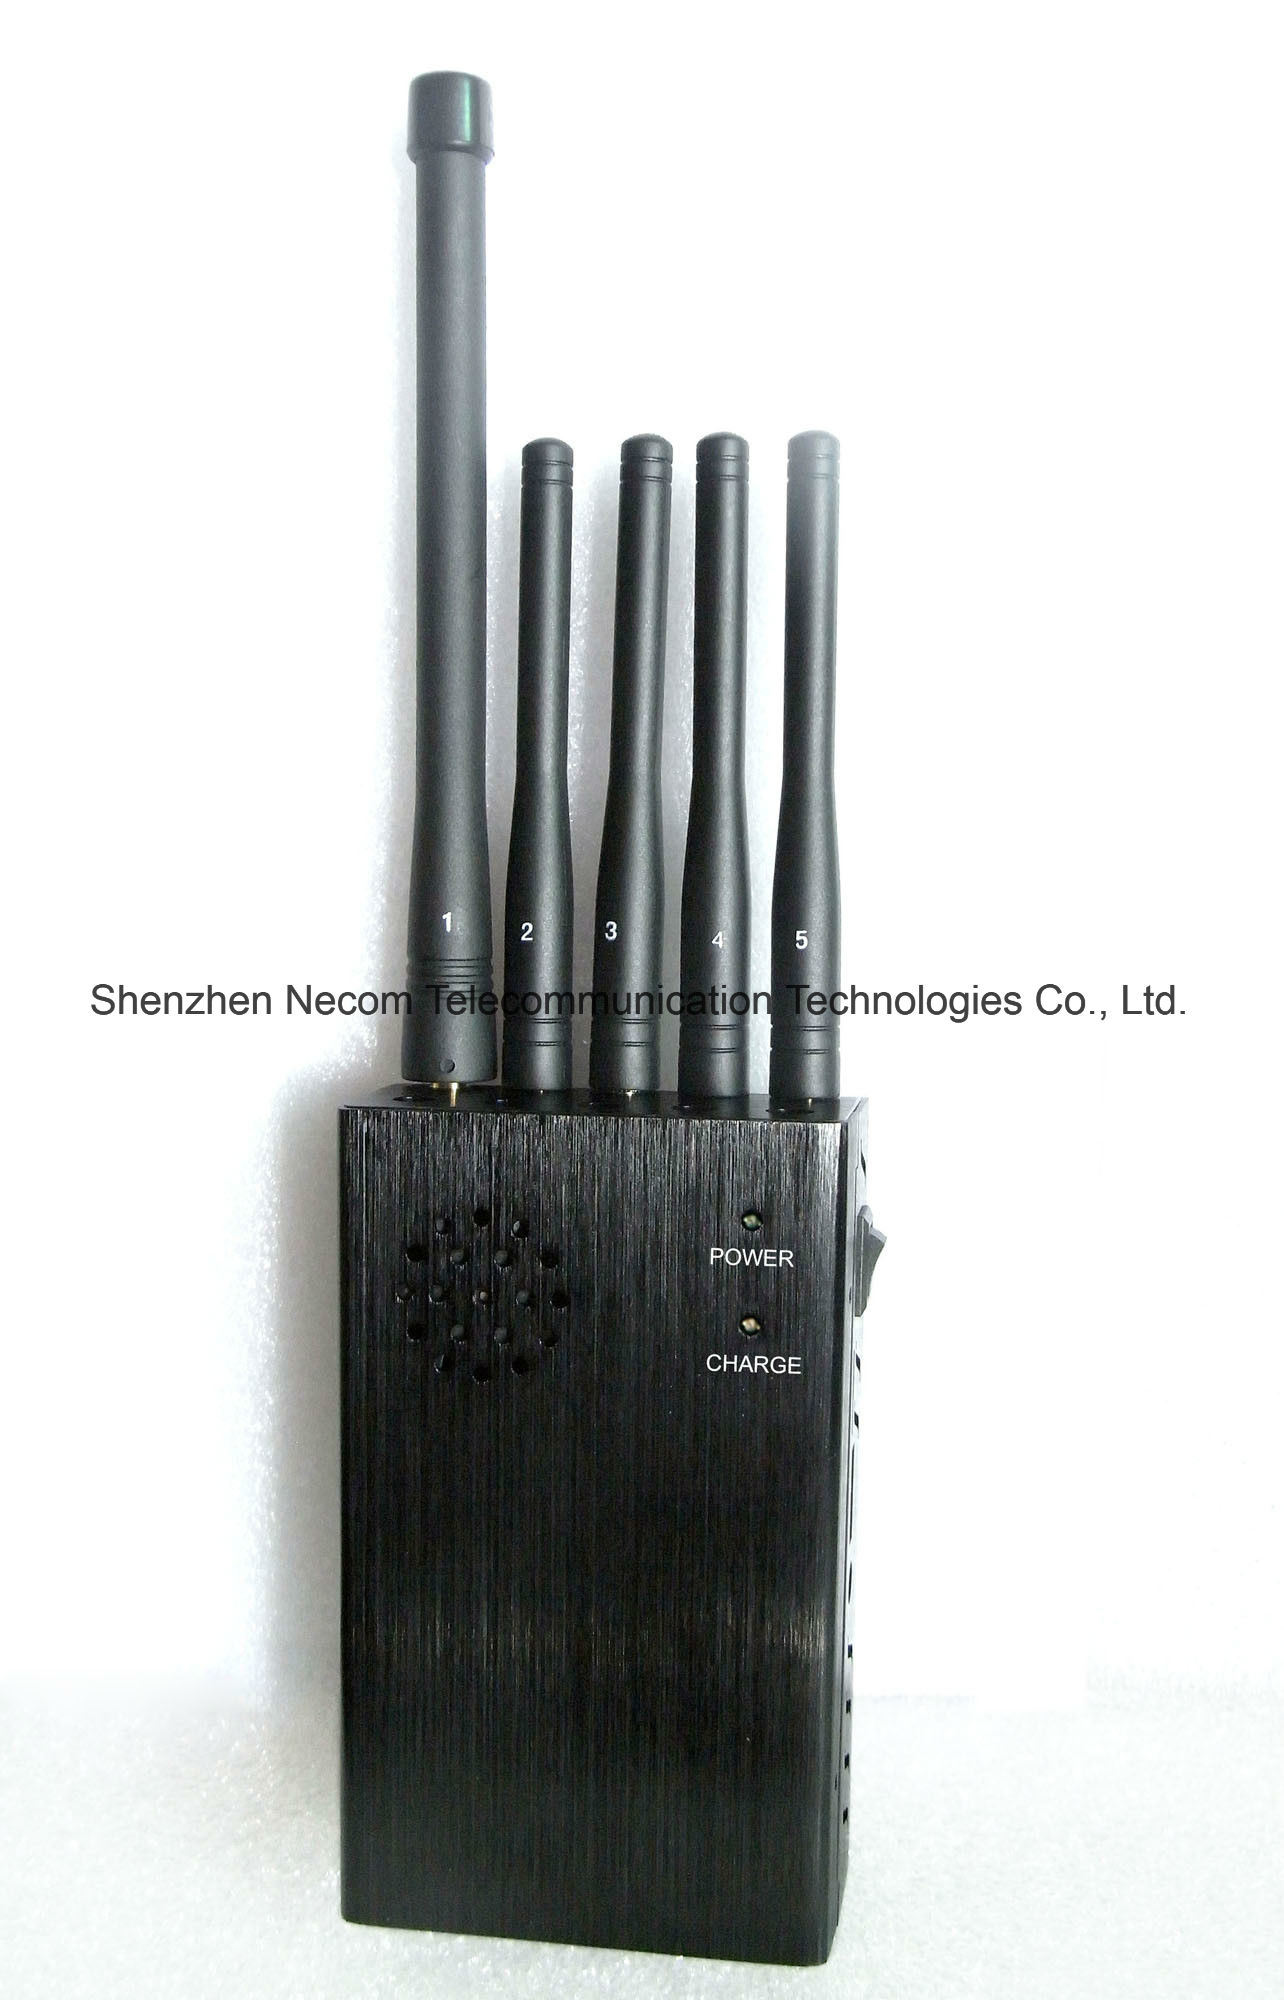 signal blocker illegal interview - China Portable GSM Cellular Signal Jammer / Blocker, Cell Phone 5 Bands Jammer/Blocker for 2g+3G+WiFi+Lojack - China 5 Band Signal Blockers, Five Antennas Jammers